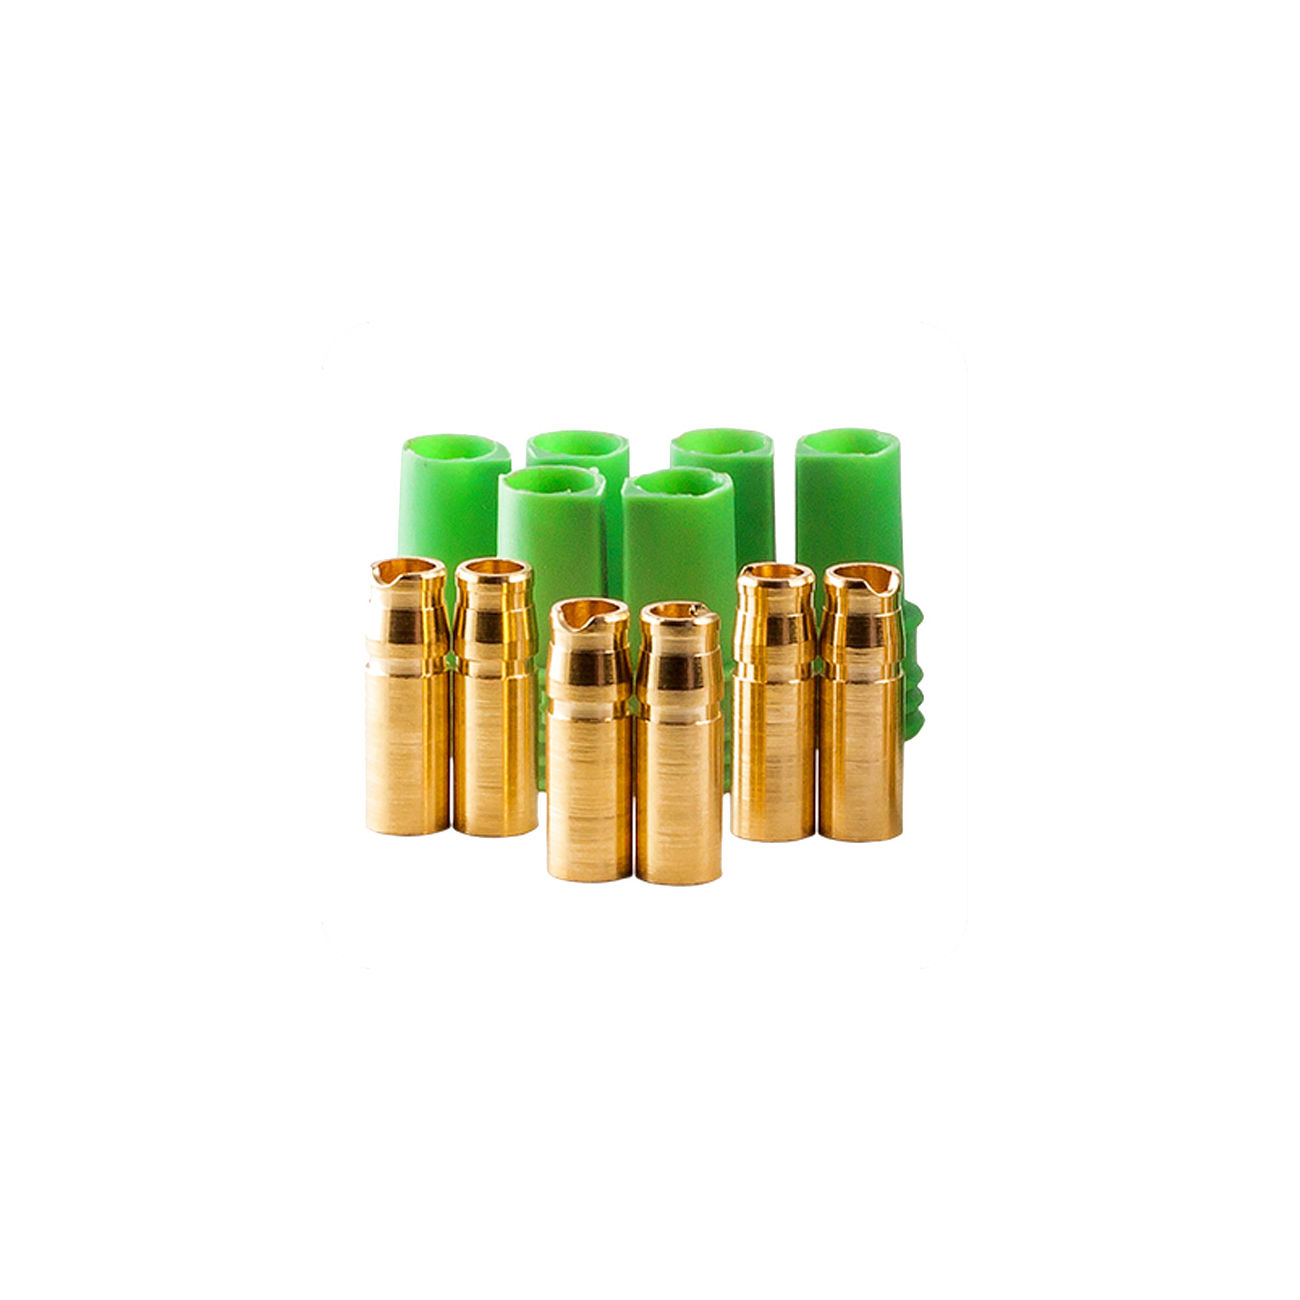 Castle Creations 4mm Polarized Connector Goldbuchsen Set (3 Sets) CSE011007600 0